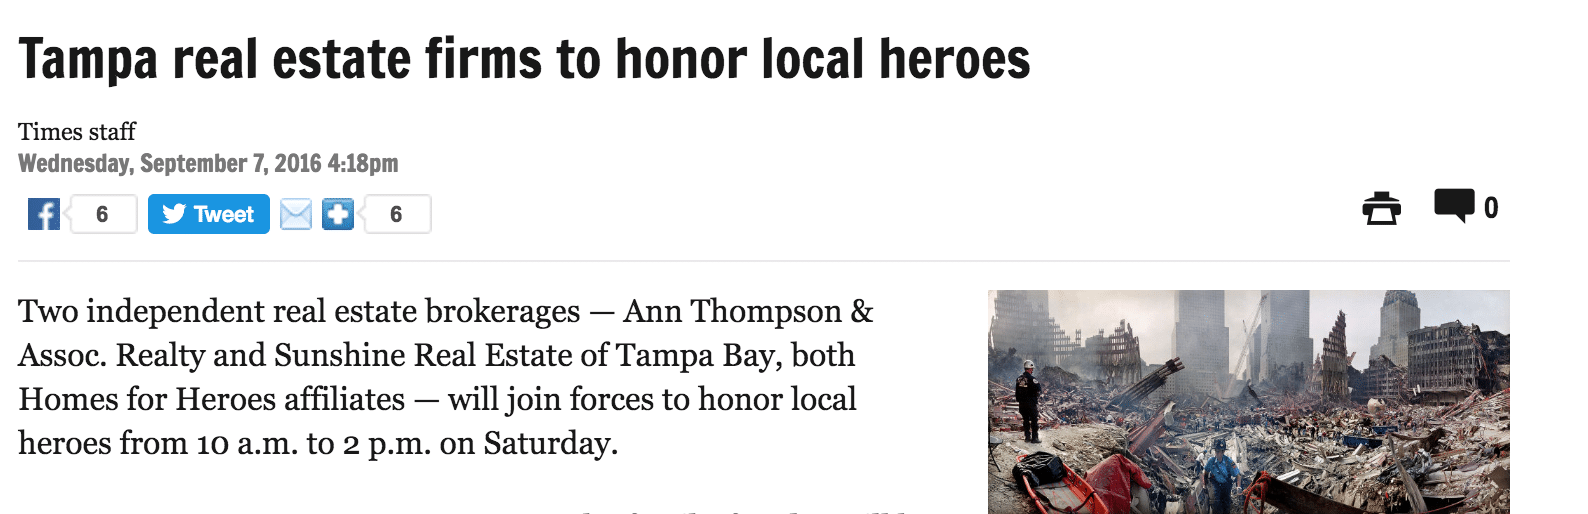 Tampa Affiiliates Team Up To Honor Heroes